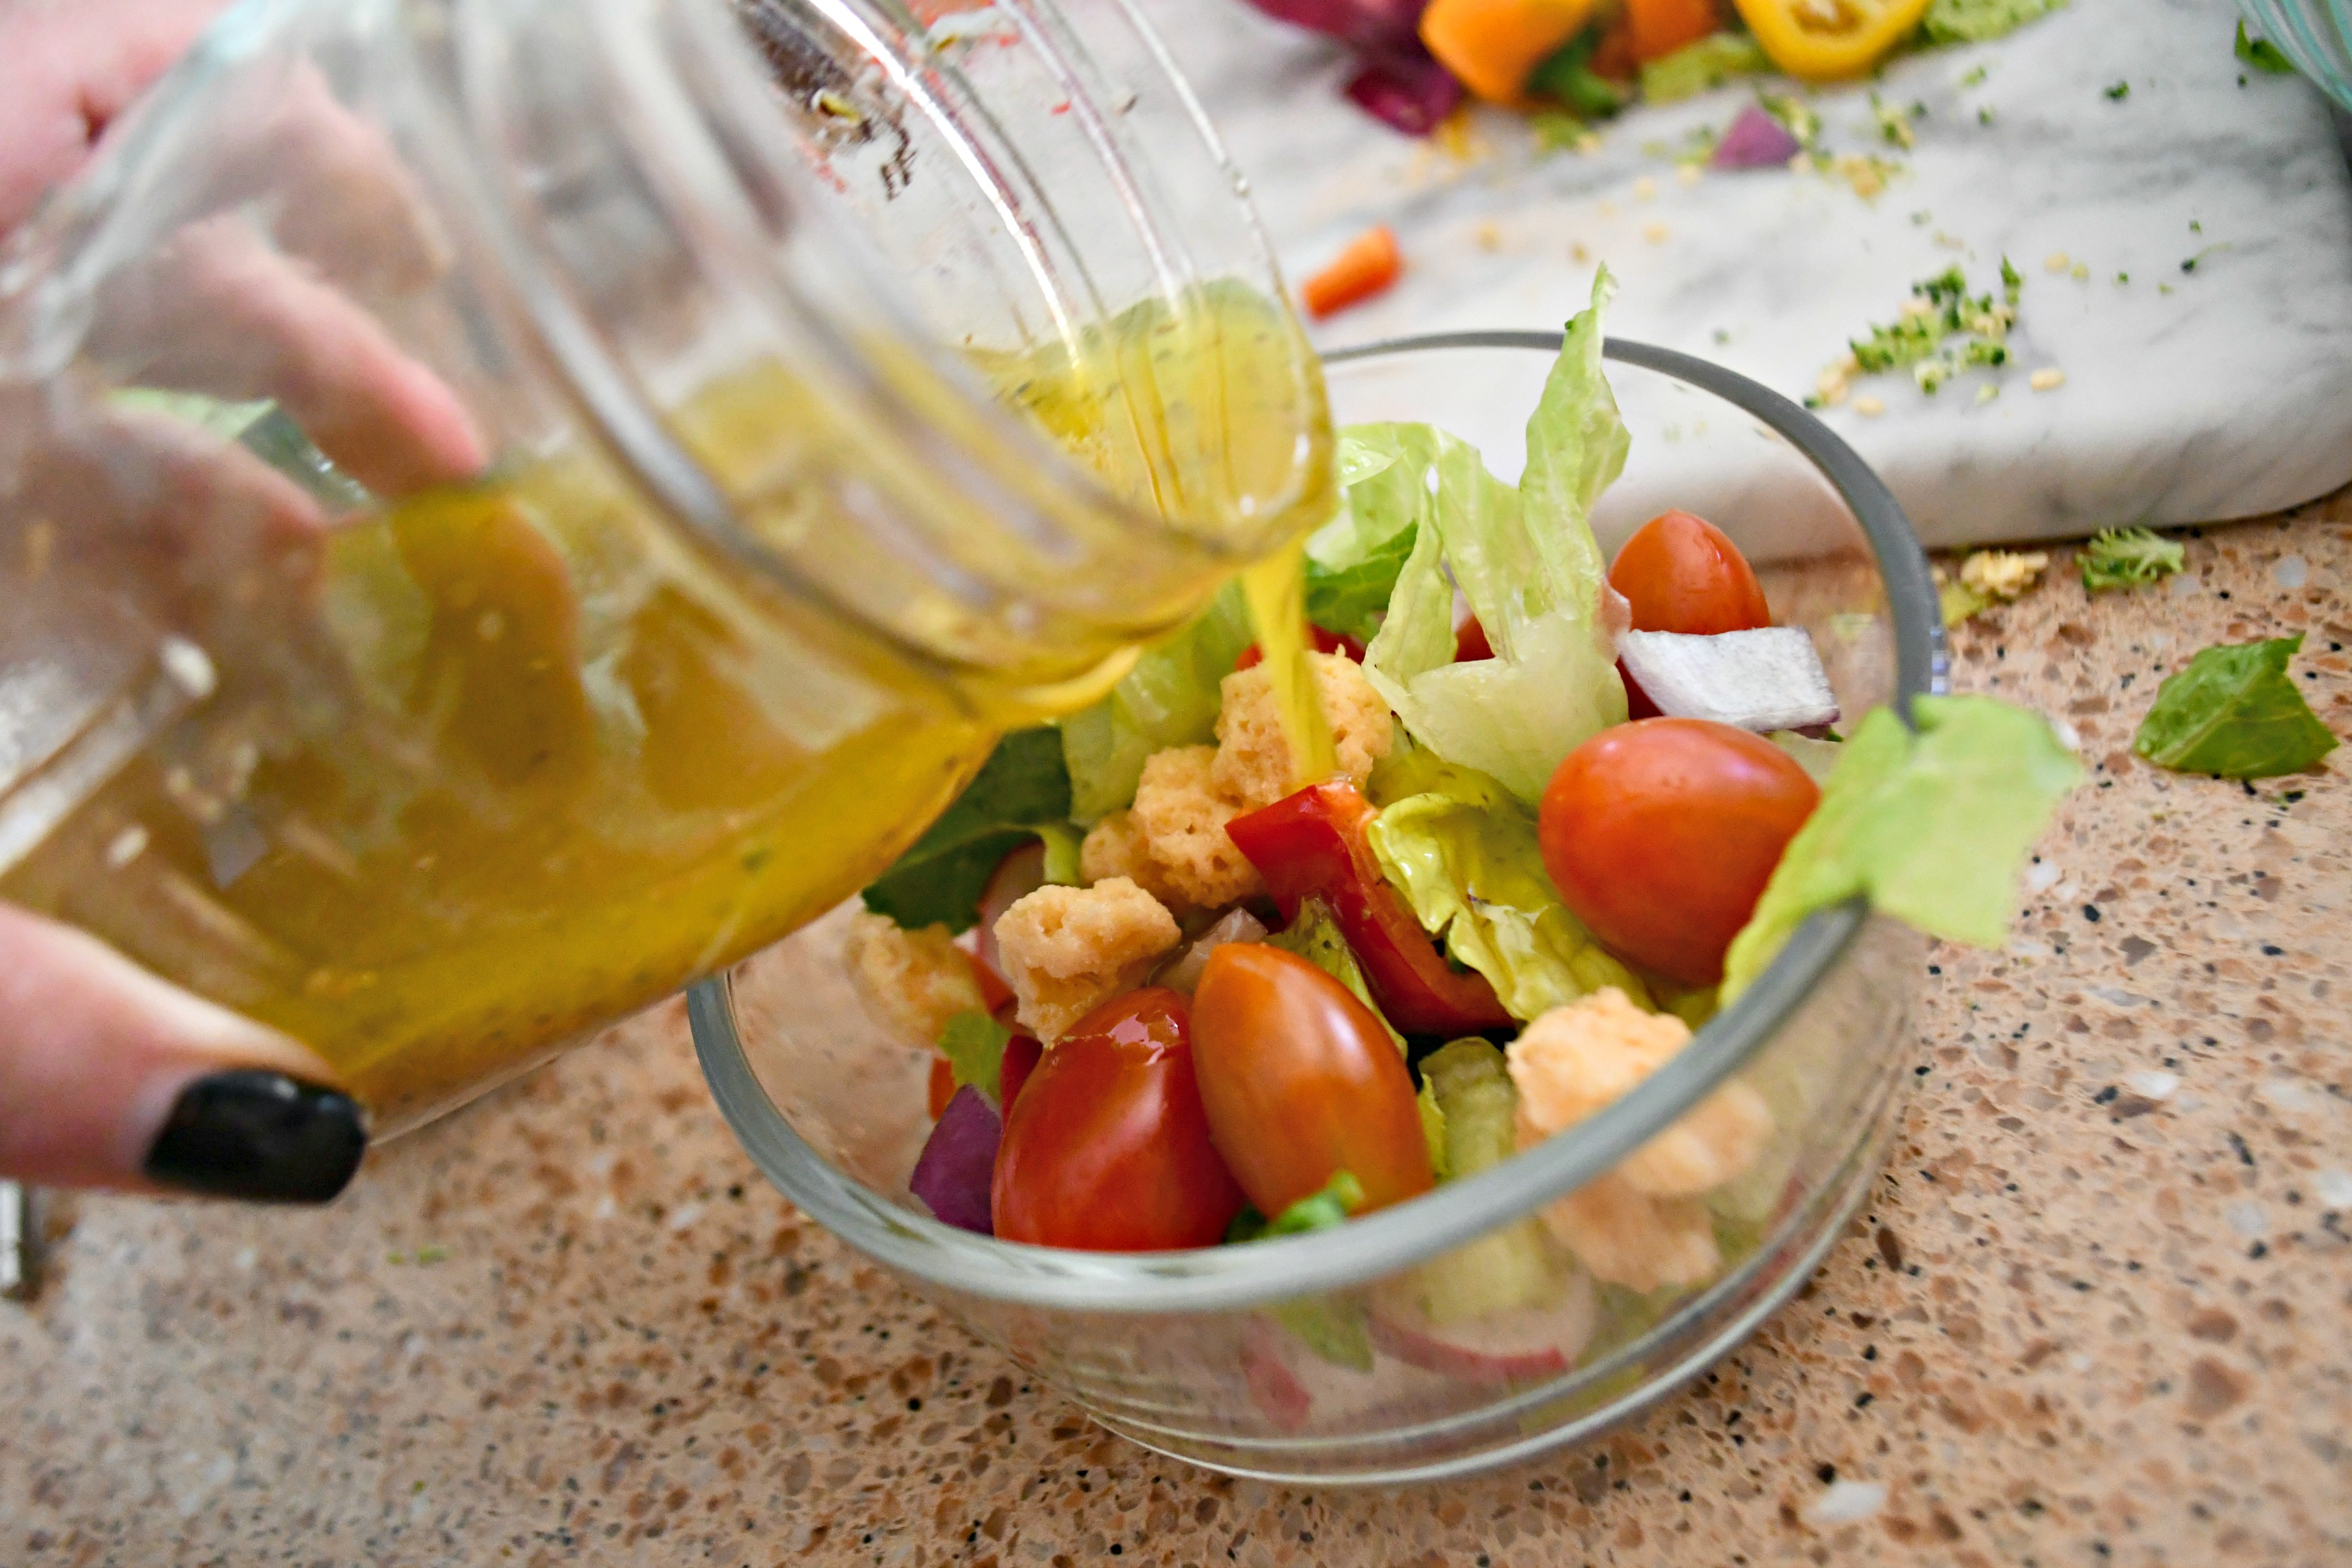 Pouring my favorite salad dressing over my Weekly Sunday Salad Prep